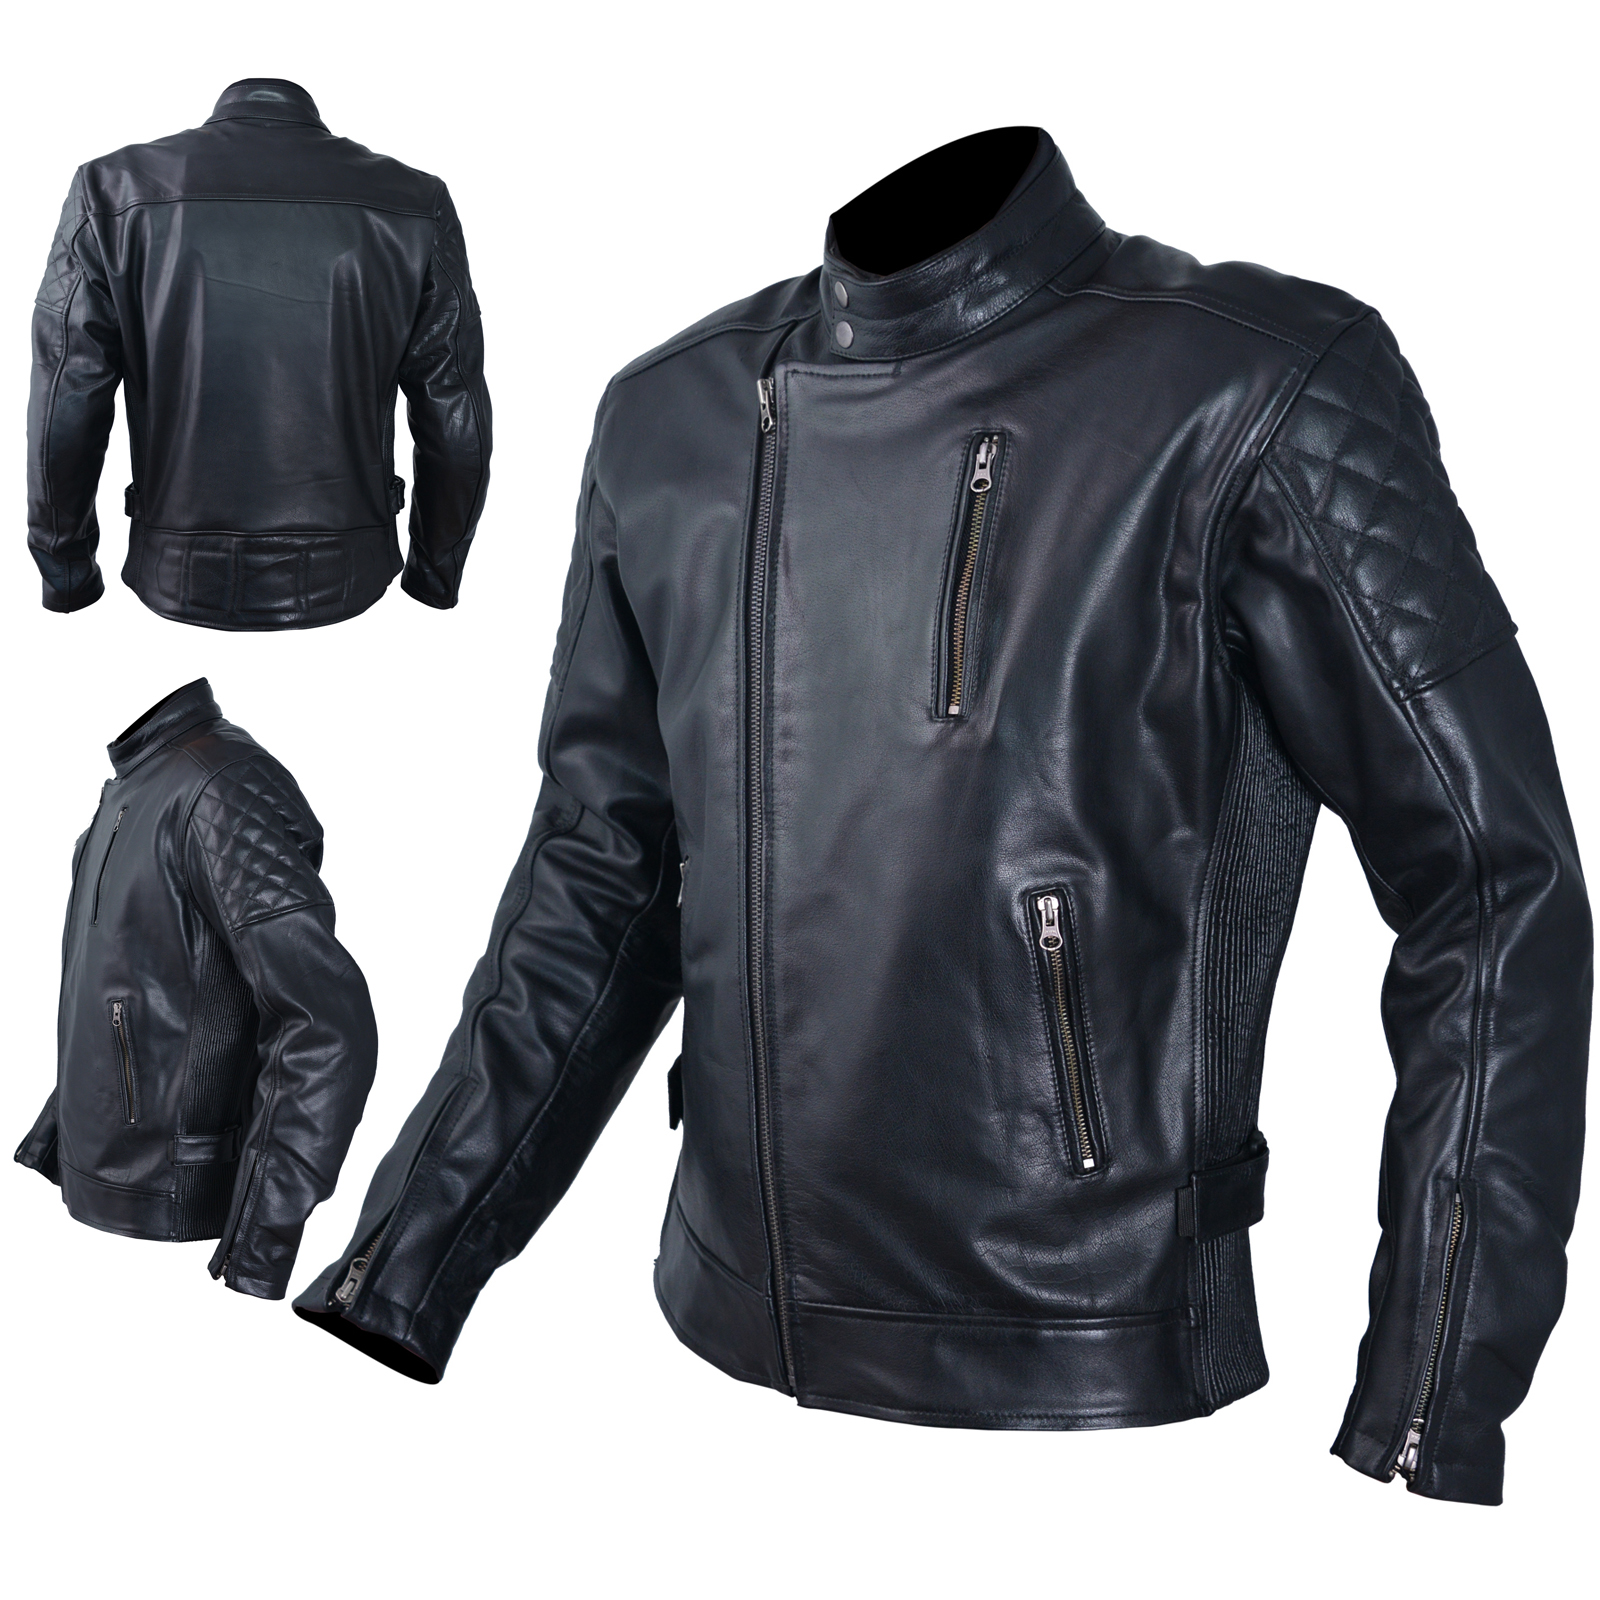 motorradjacke chopperjacke vintage leder ce protektoren. Black Bedroom Furniture Sets. Home Design Ideas